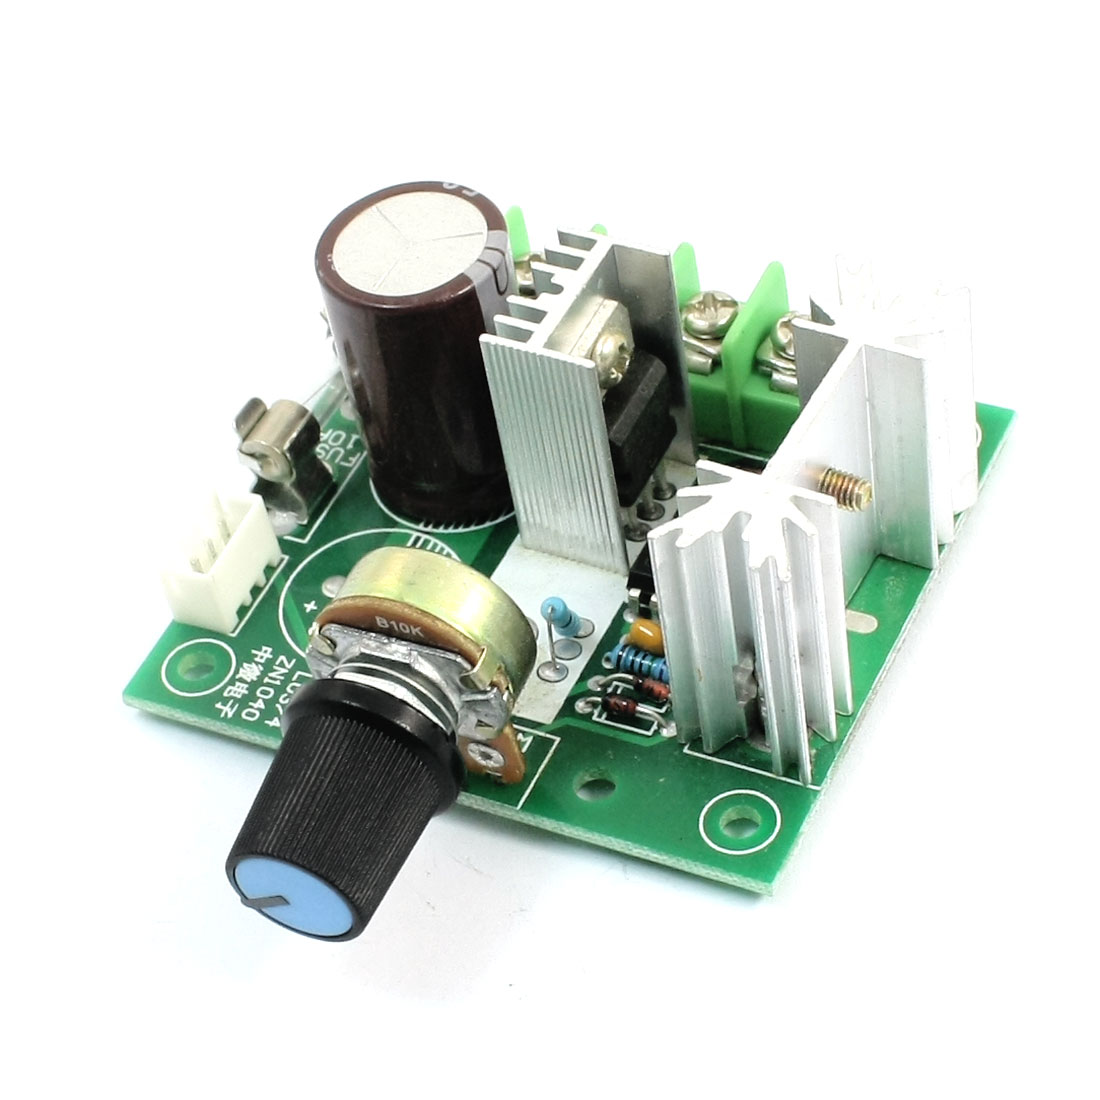 Pulse Width Modulation PWM Motor Speed Adjustable Controller Governor DC5-15V 200W w B10K Rotary Potentiometer